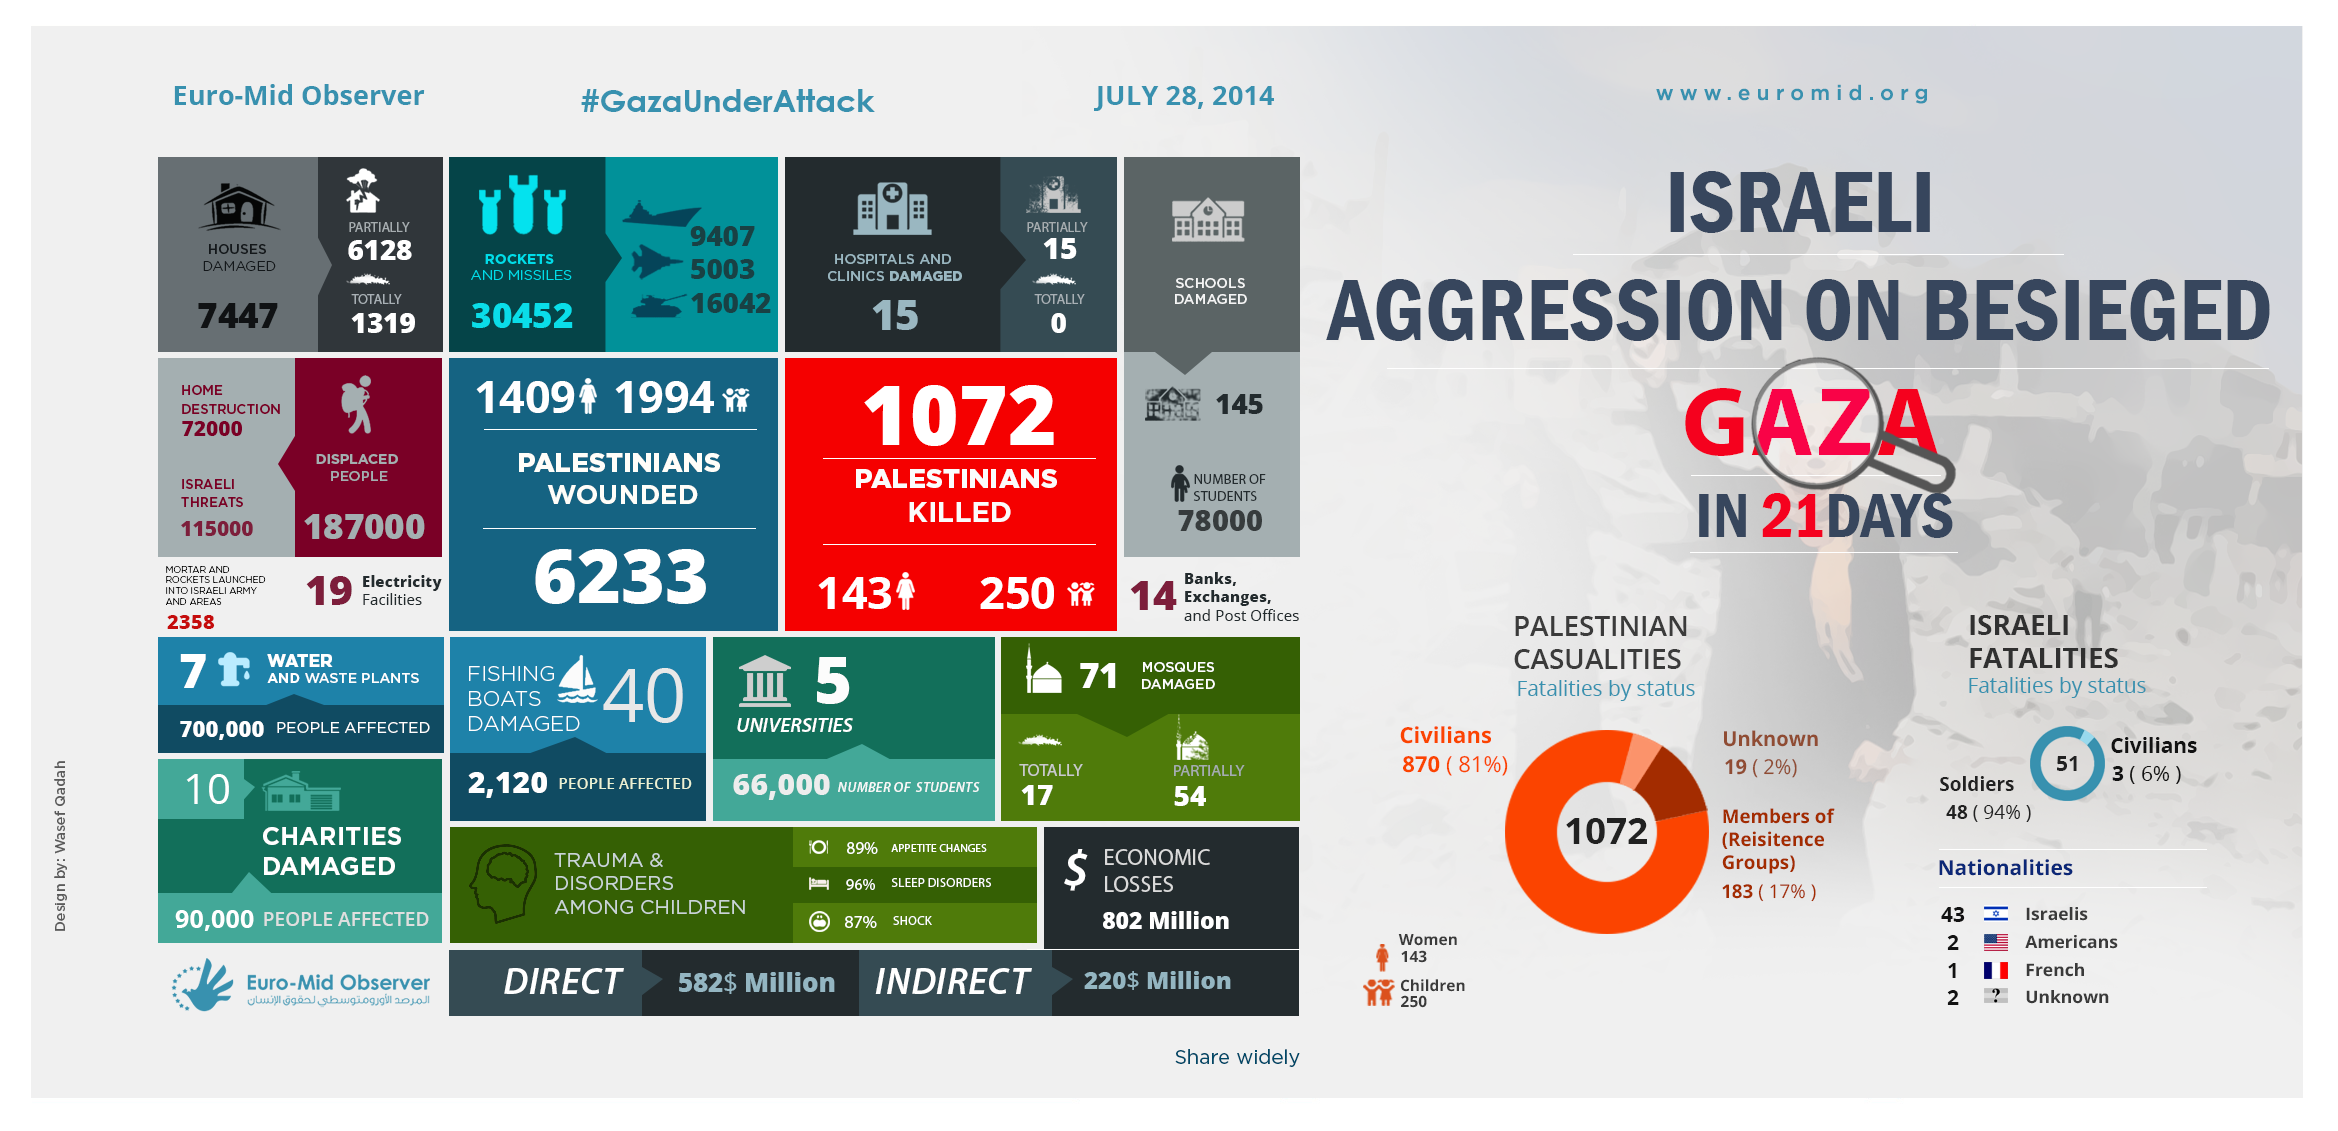 Israeli Aggression on besieged Gaza in 21 Days